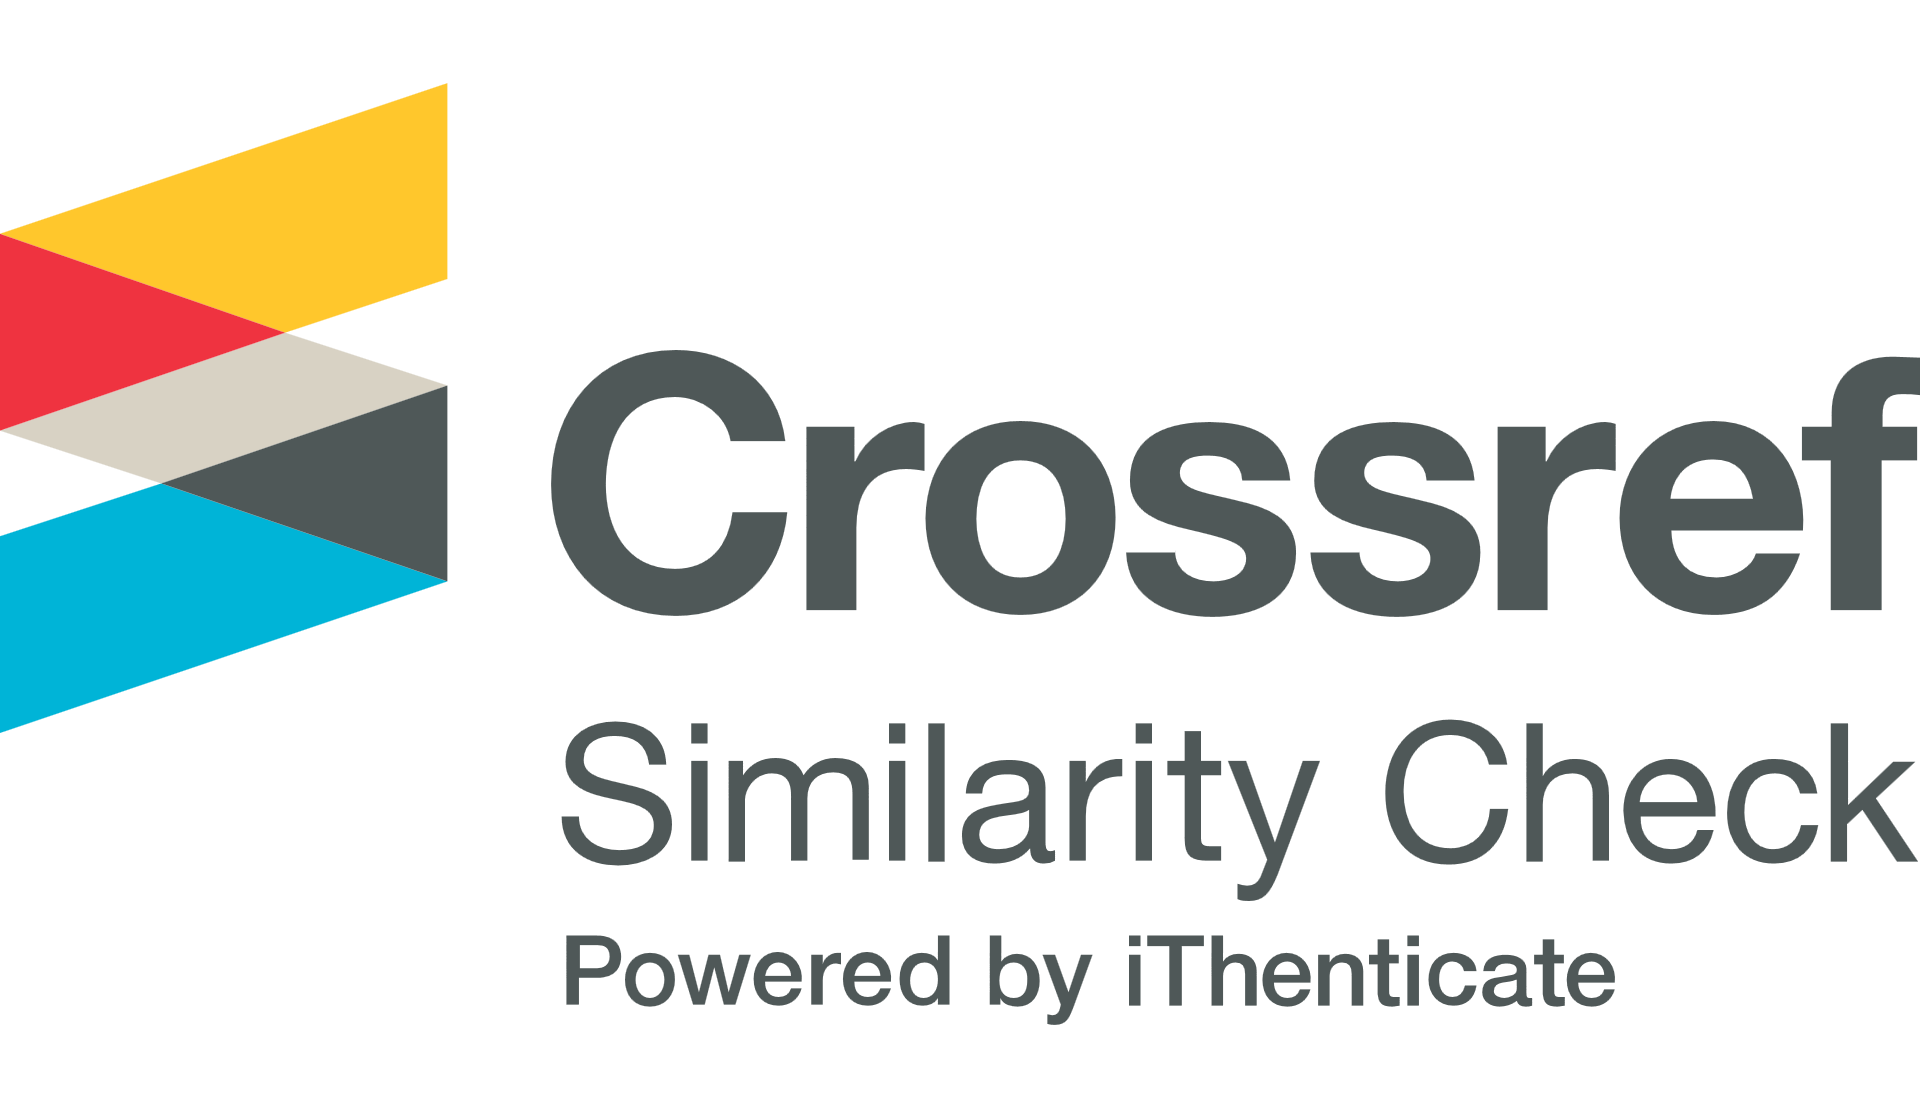 Crossreft Simililarity Check